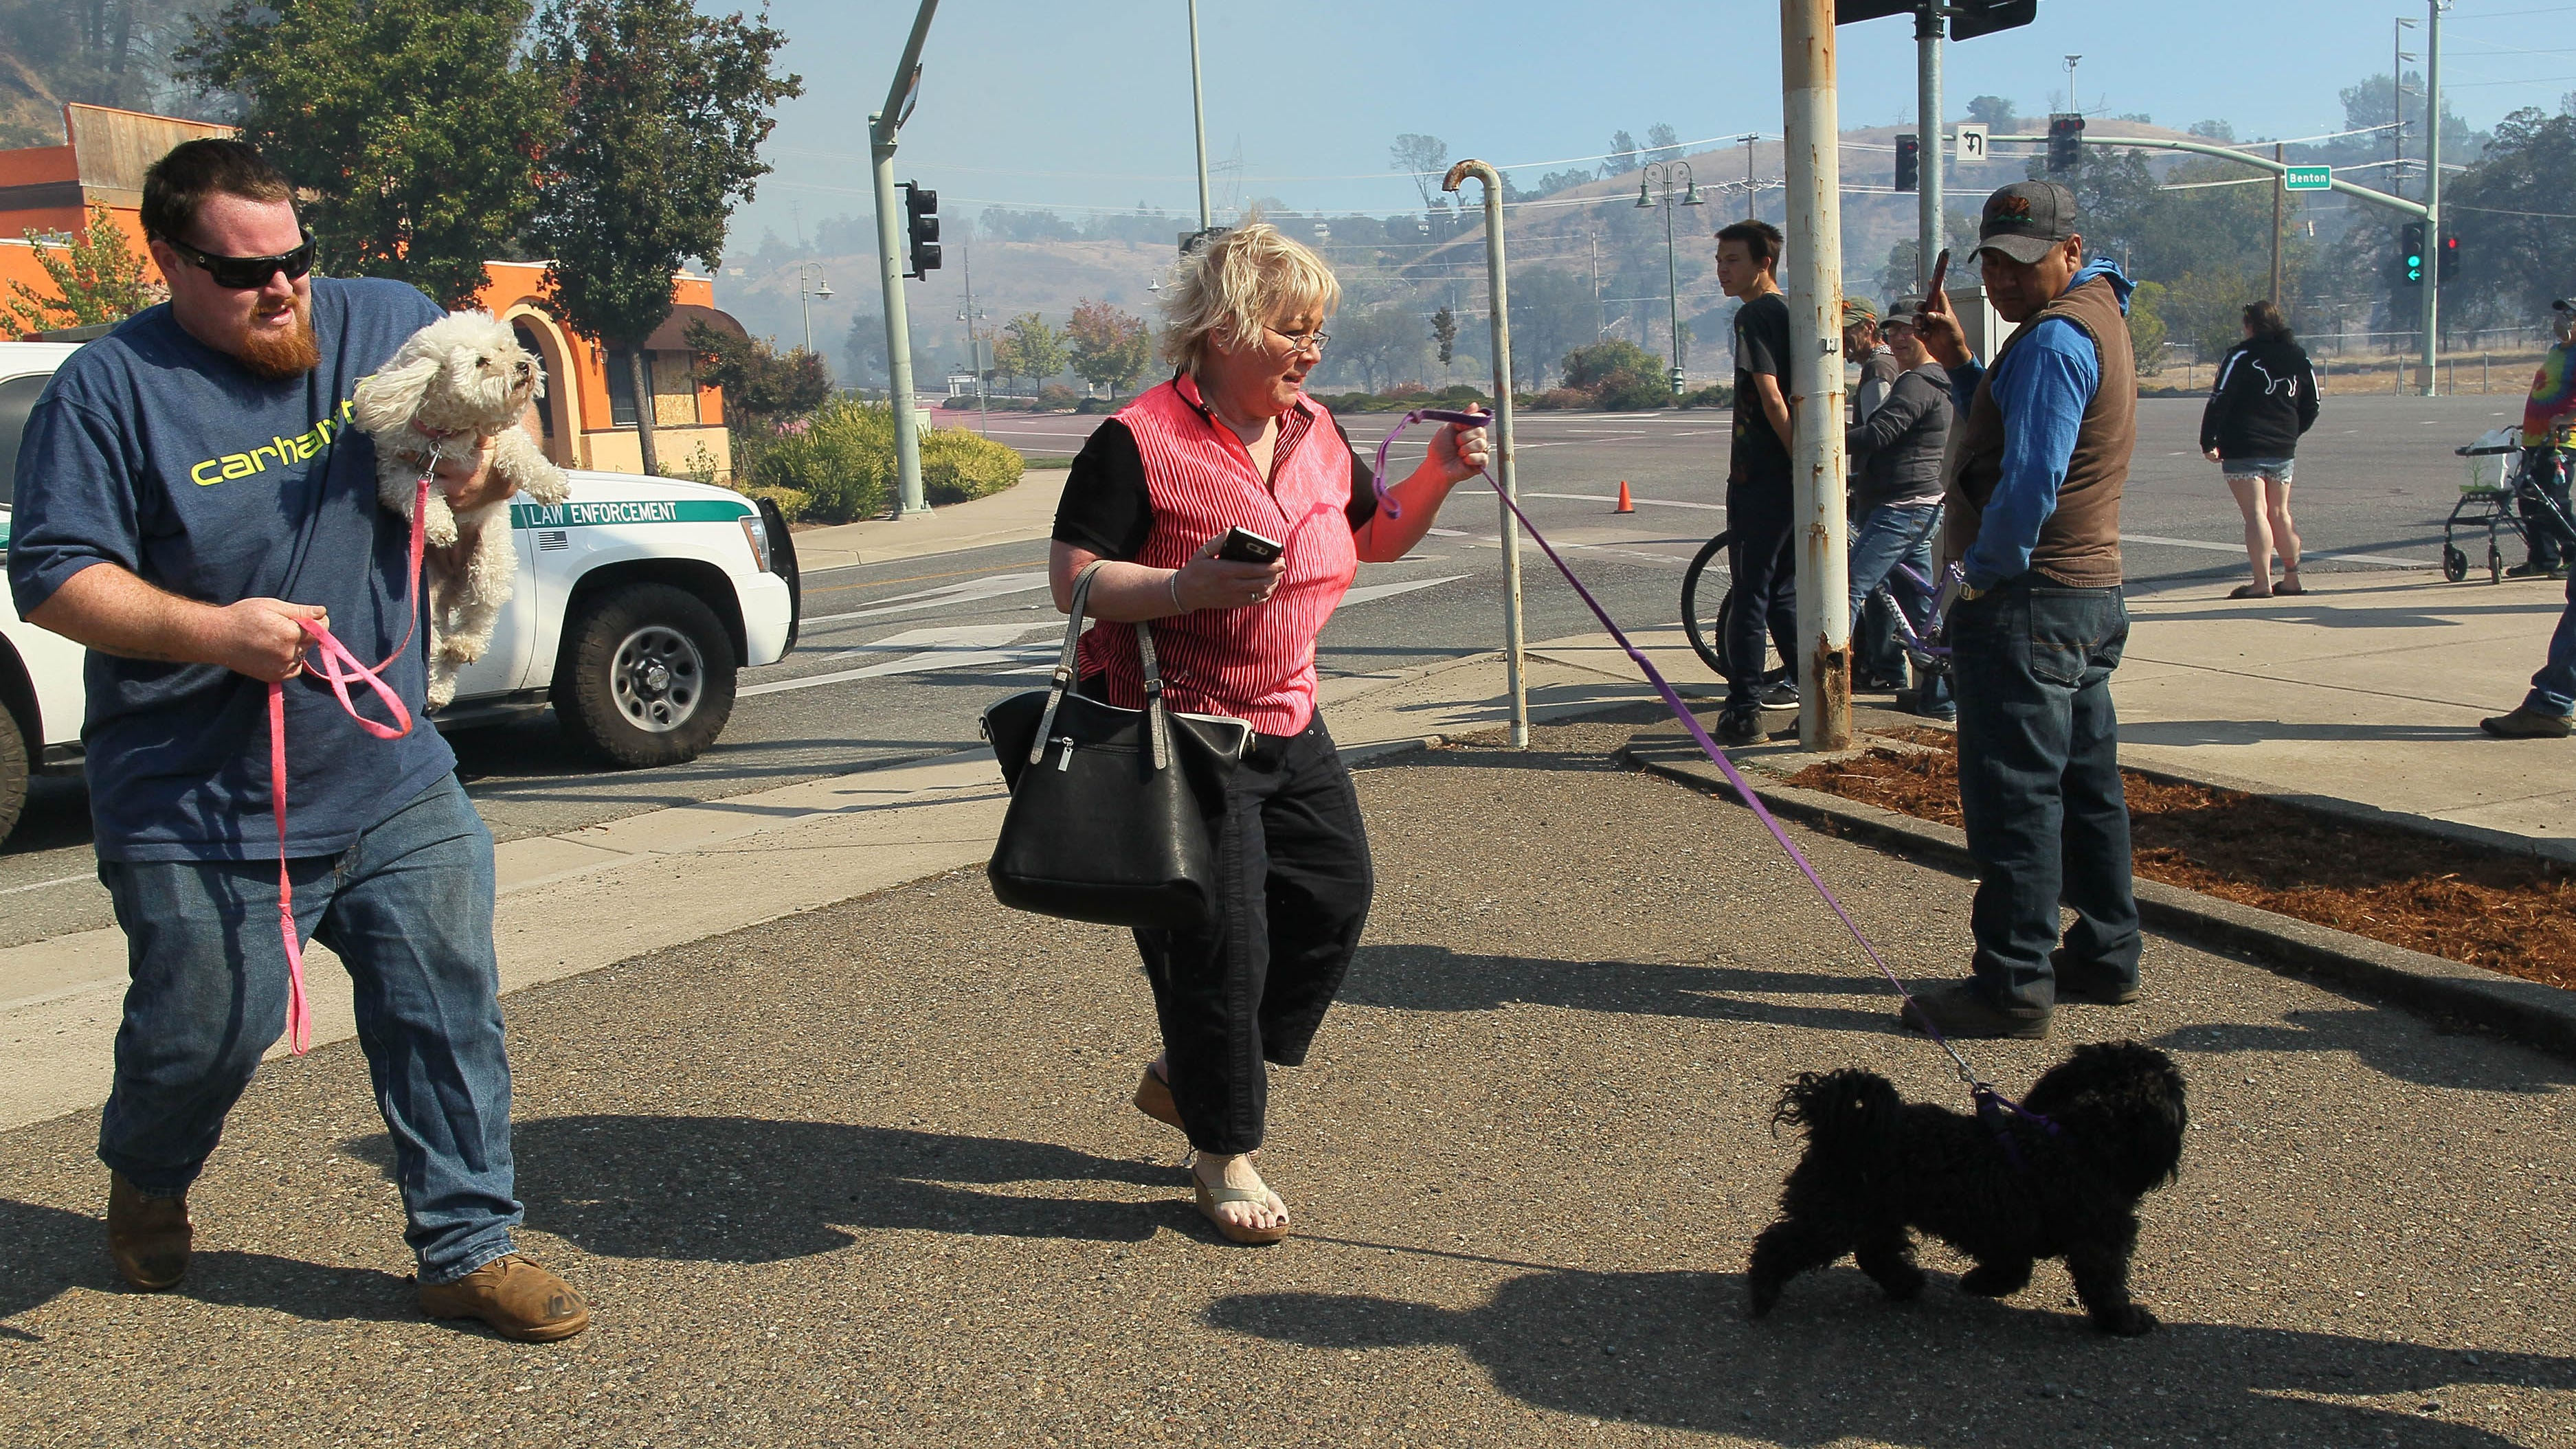 Evacuated residents from the Redding Heights subdivision rushed to safety with their dogs in the area of North Market Street at Benton Drive after the Masonic Fire broke out Sunday morning, Oct. 14, 2018 in the Sulphur Creek canyon. (Hung T. Vu/Special to the Record Searchlight)